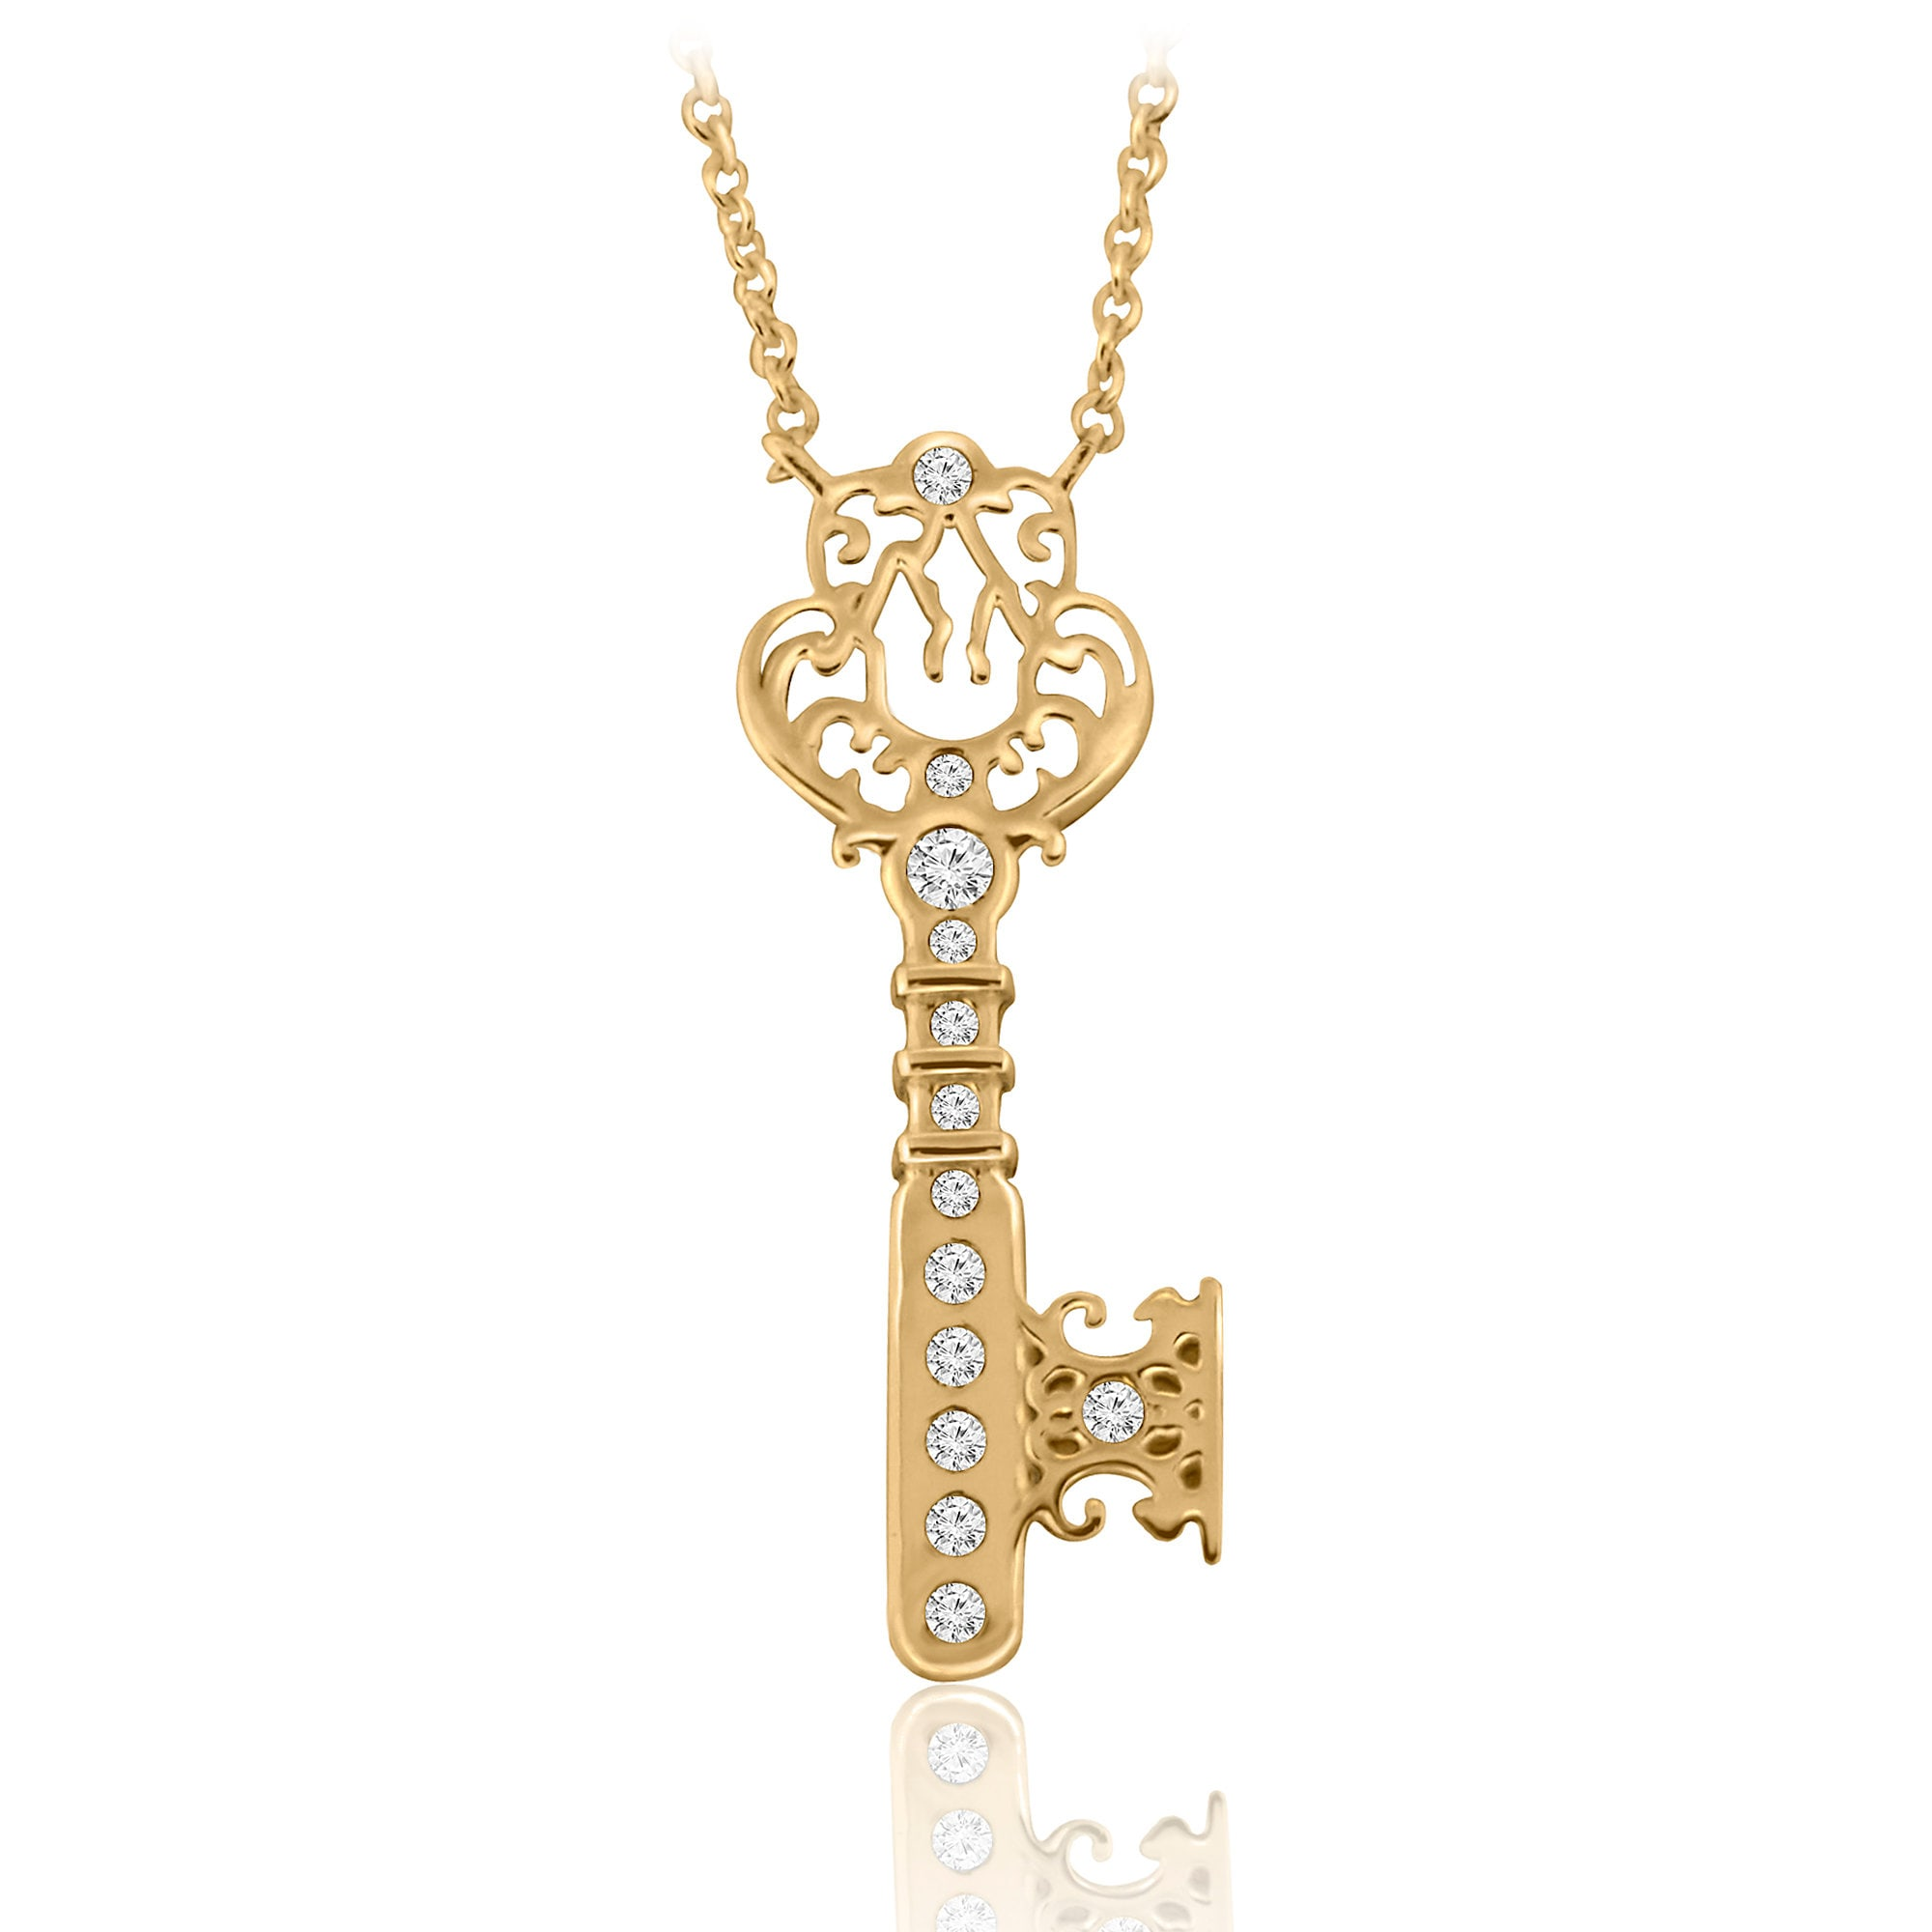 Castle Key Necklace Disney Designer Jewelry Collection Gold